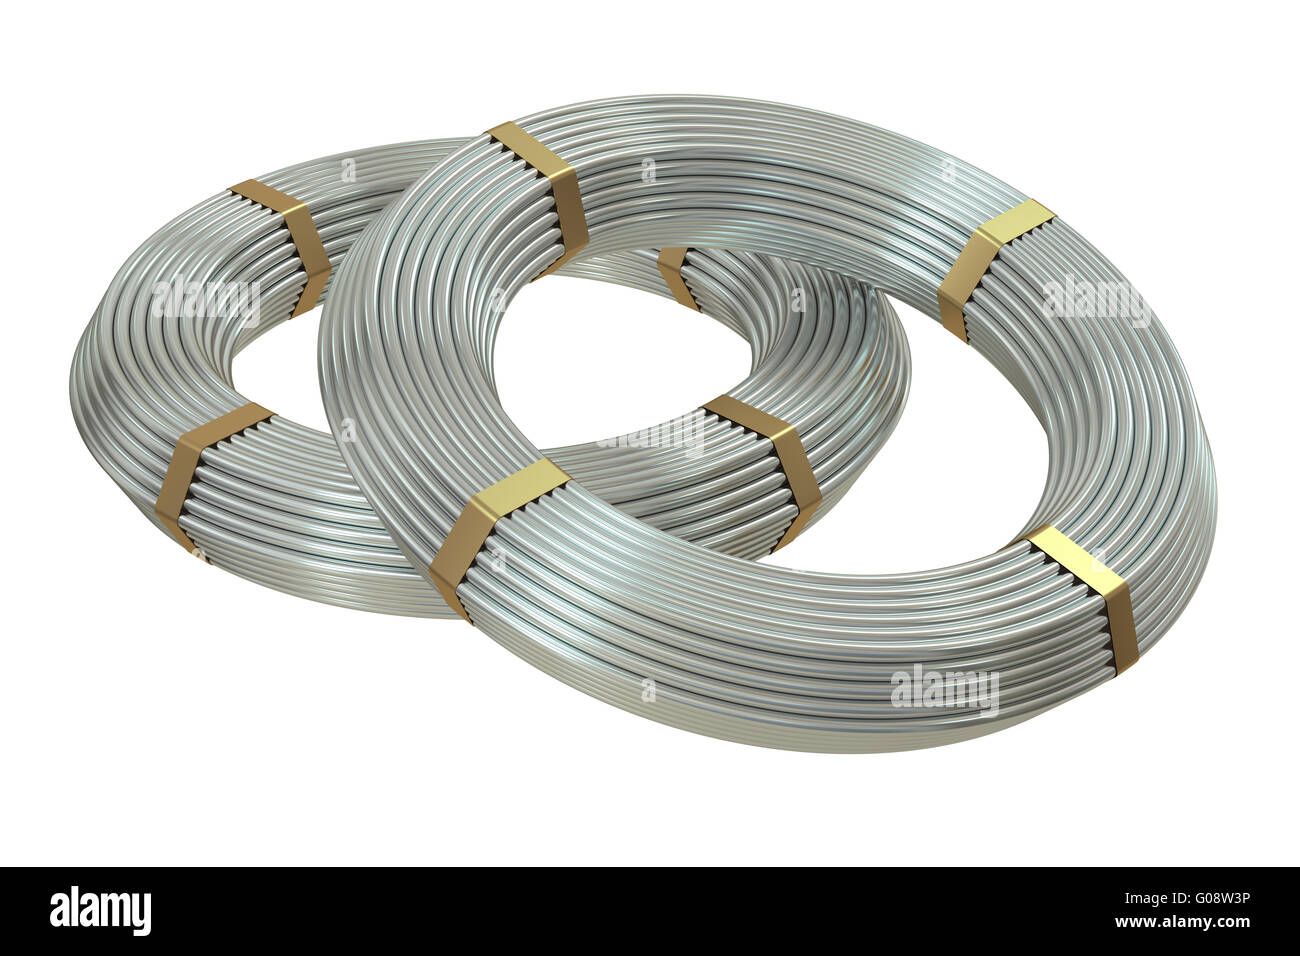 Steel Wire Coils Stock Photos & Steel Wire Coils Stock Images - Alamy